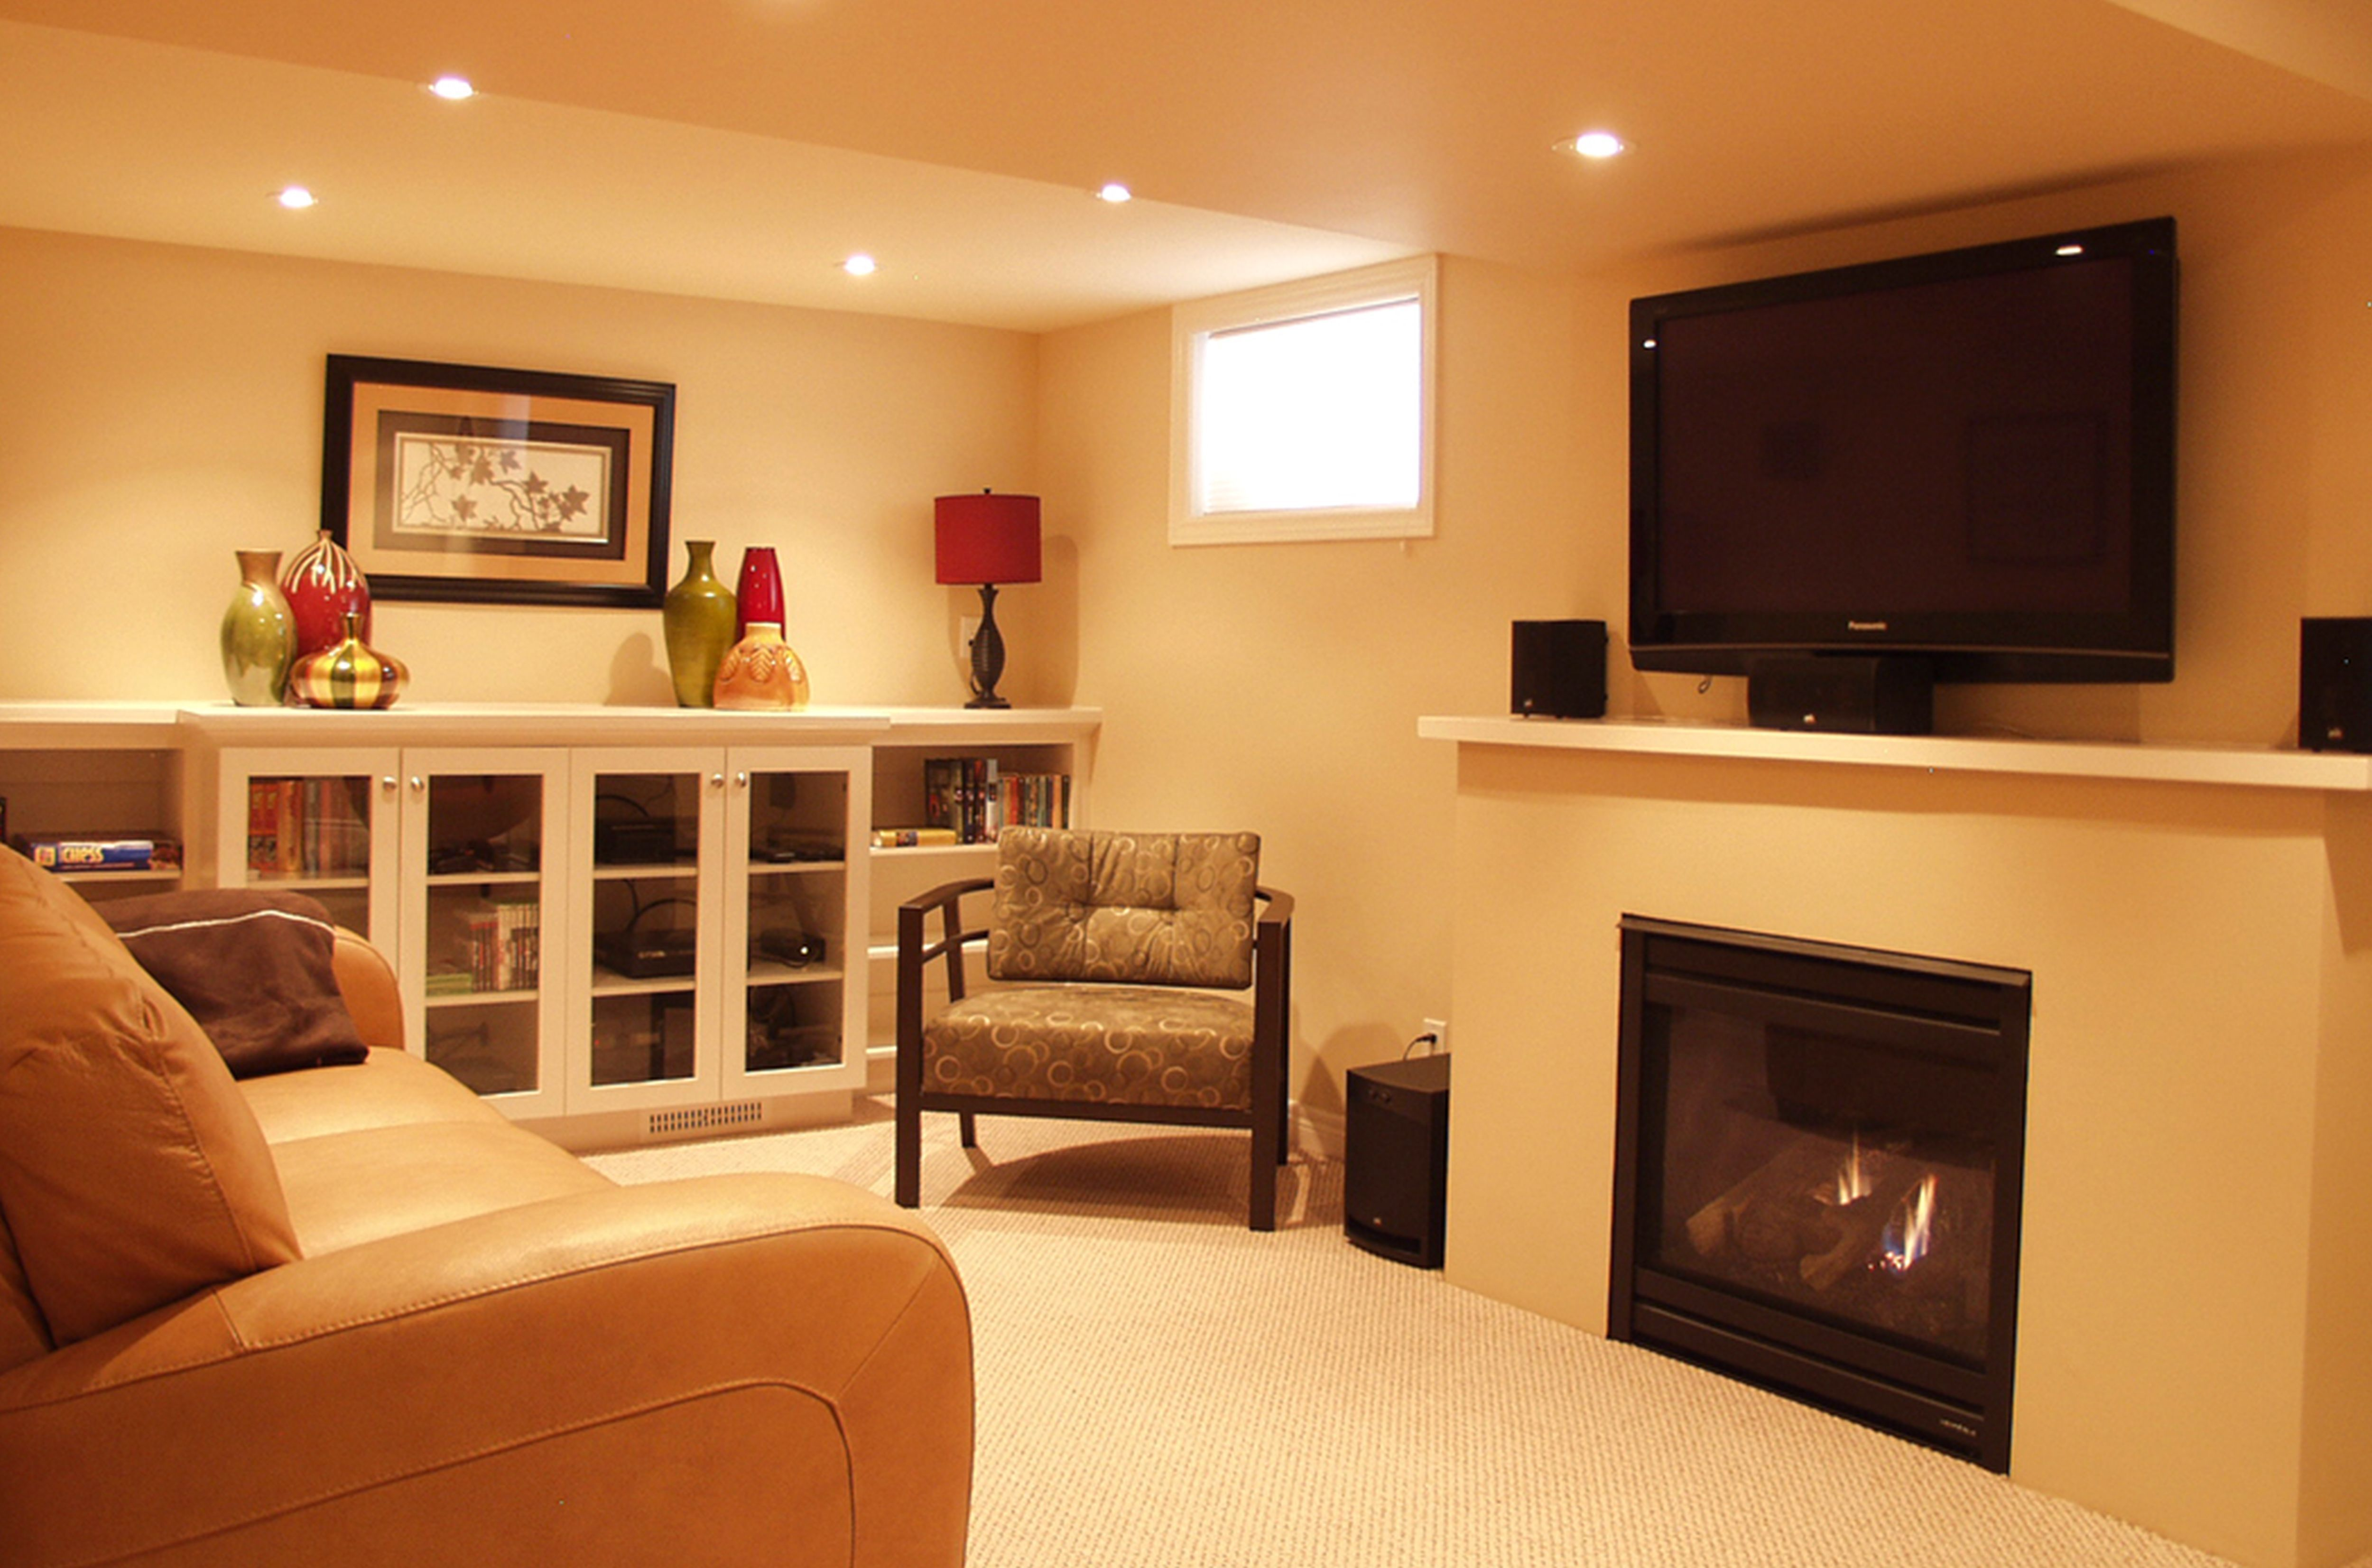 cool basement colors. Copper Room Design Ideas | Warm Wall Colors Creating A Serene Basement Family . Cool R